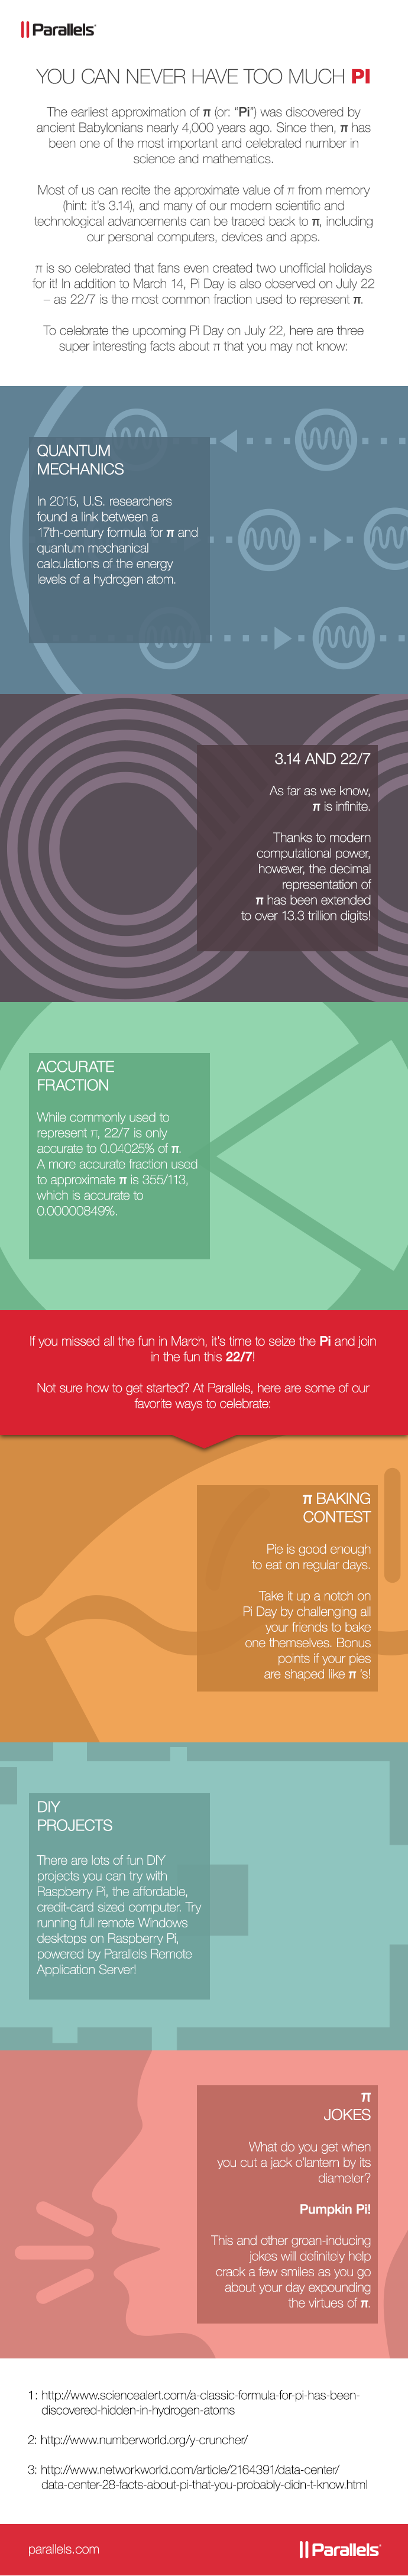 Source: Parallels. Infographic on Pi Day.